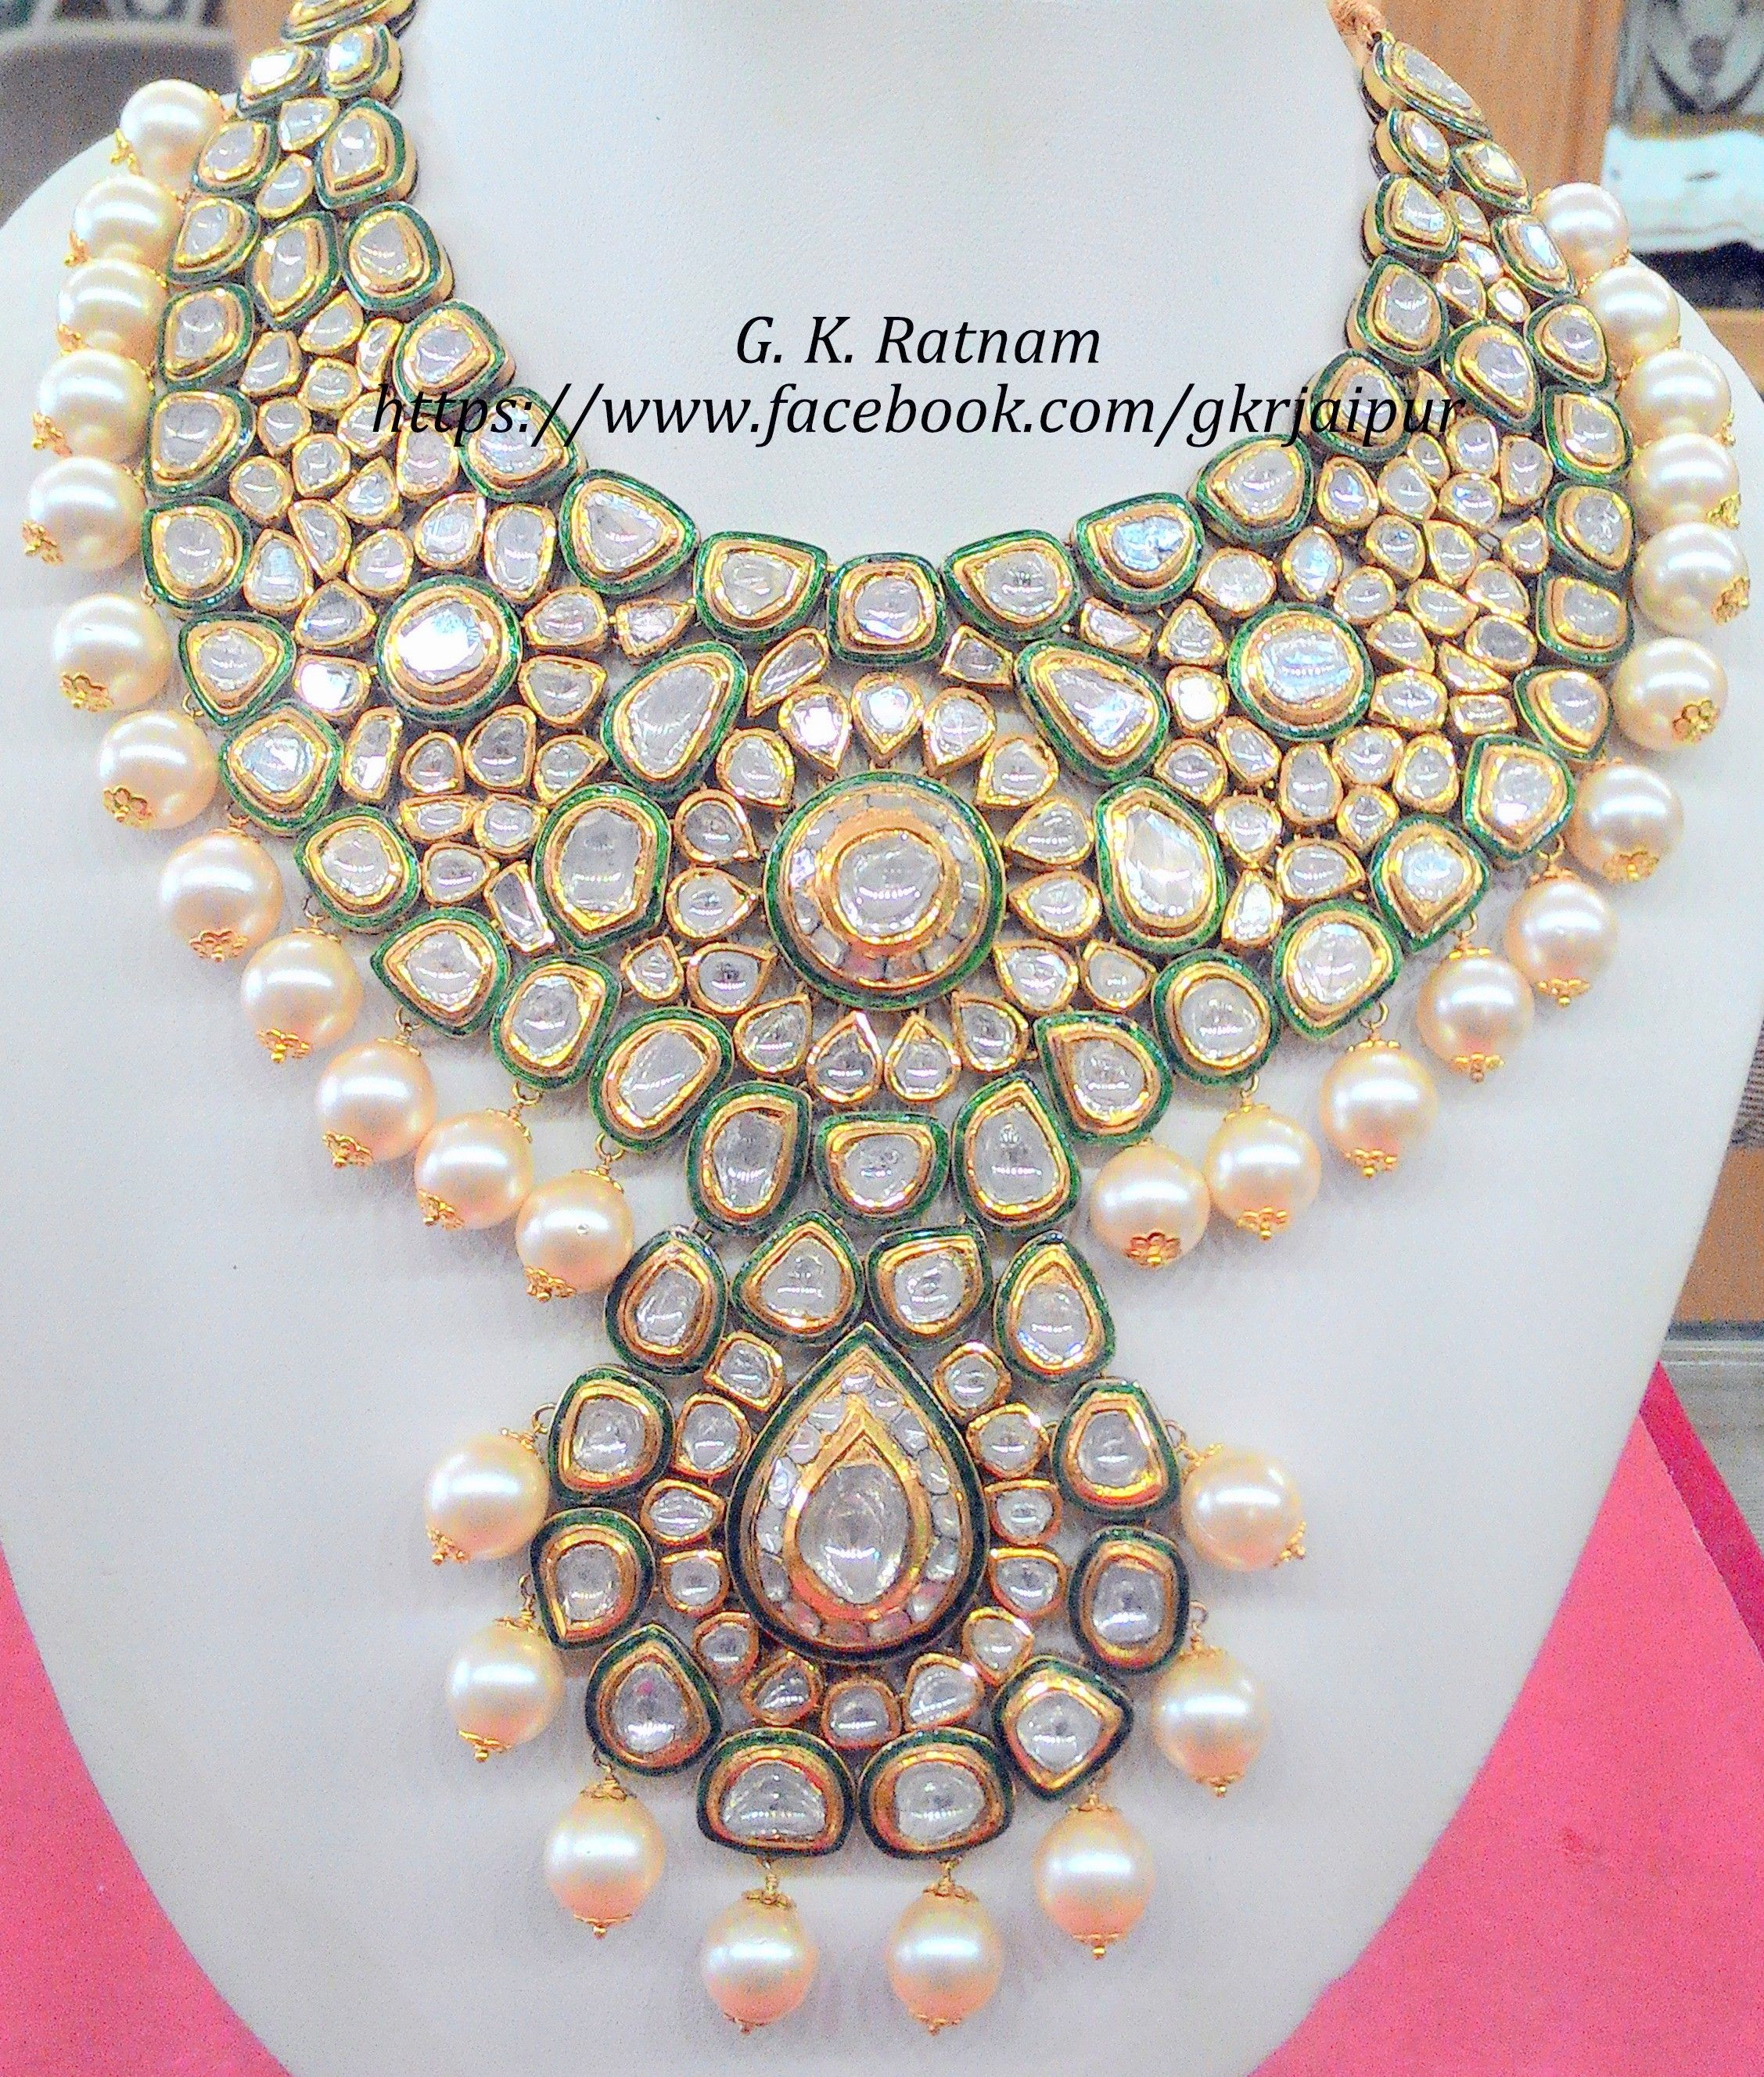 Jewelry adds richness and another layer in the